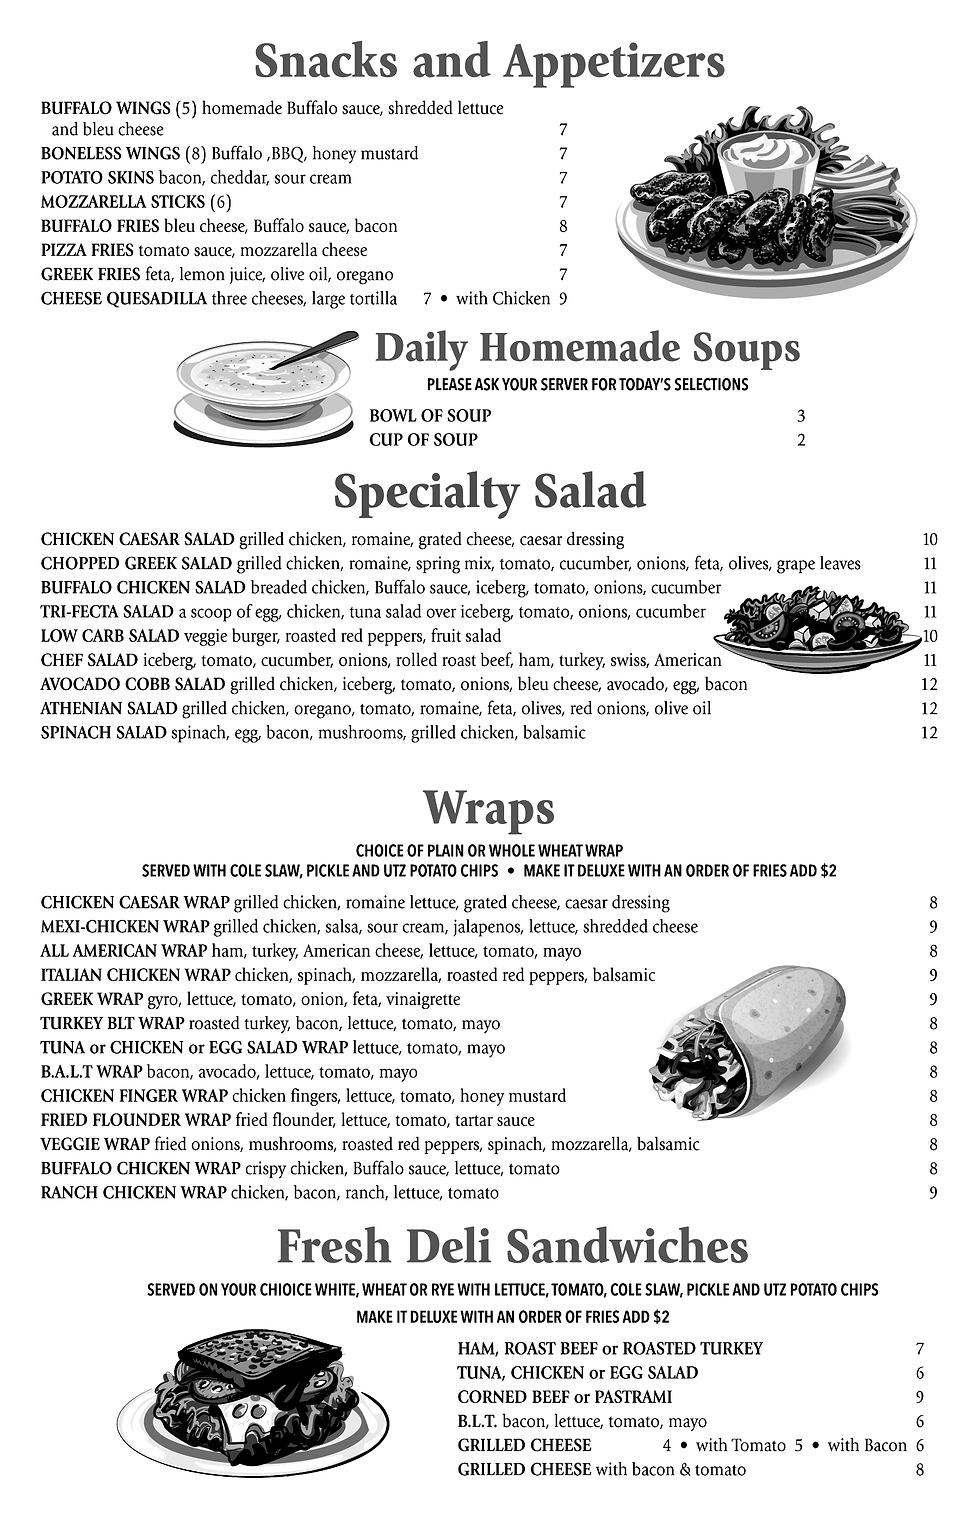 122720-RAMSEY CORNER CAFE-Snacks.tif